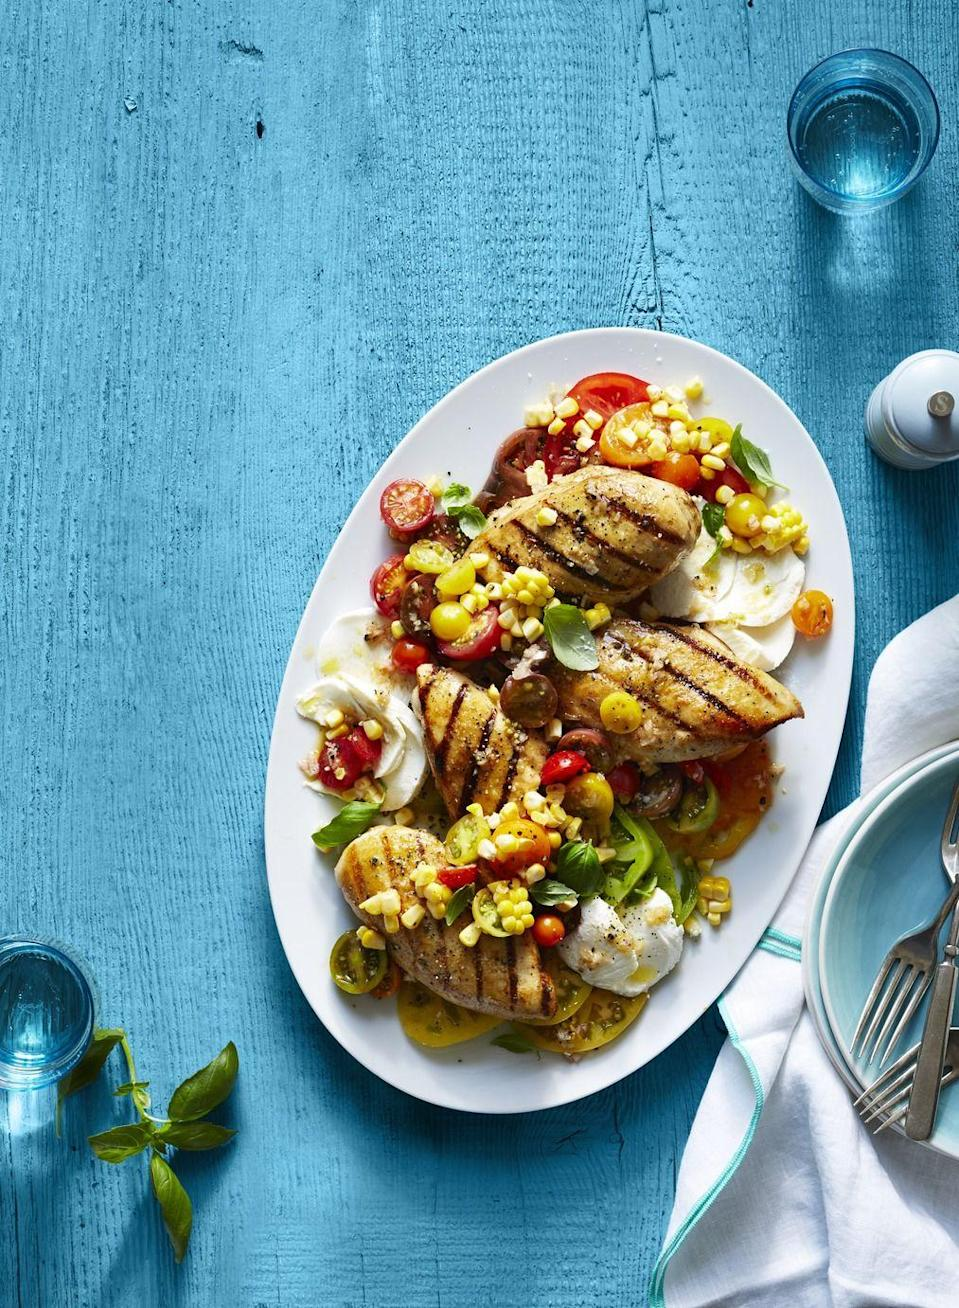 "<p>Chicken is a great way to add filling protein to a Caprese salad.</p><p><a href=""https://www.womansday.com/food-recipes/food-drinks/recipes/a51545/grilled-chicken-caprese/"" rel=""nofollow noopener"" target=""_blank"" data-ylk=""slk:Get the Grilled Chicken Caprese recipe."" class=""link rapid-noclick-resp""><em><strong>Get the Grilled Chicken Caprese recipe.</strong></em></a></p>"